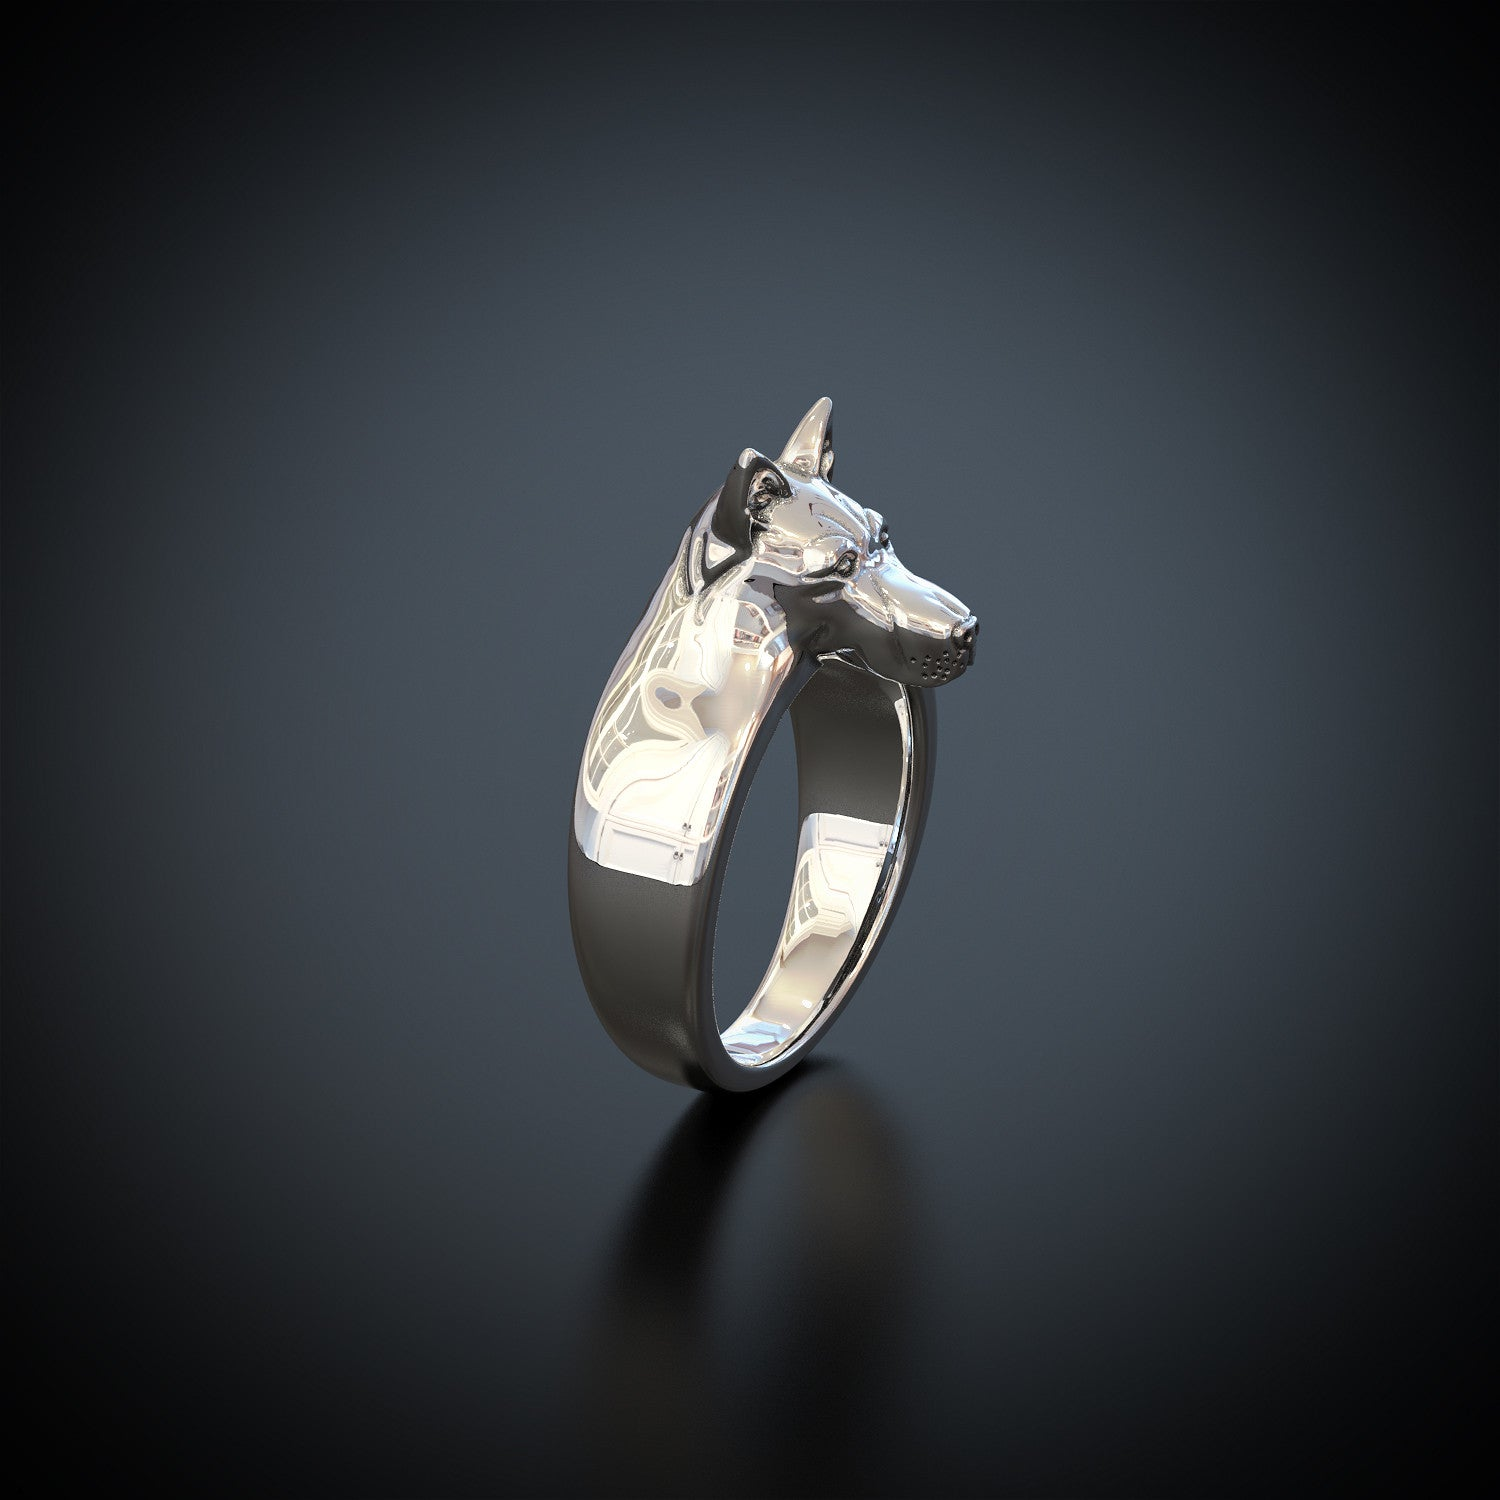 German Shepherd Ring